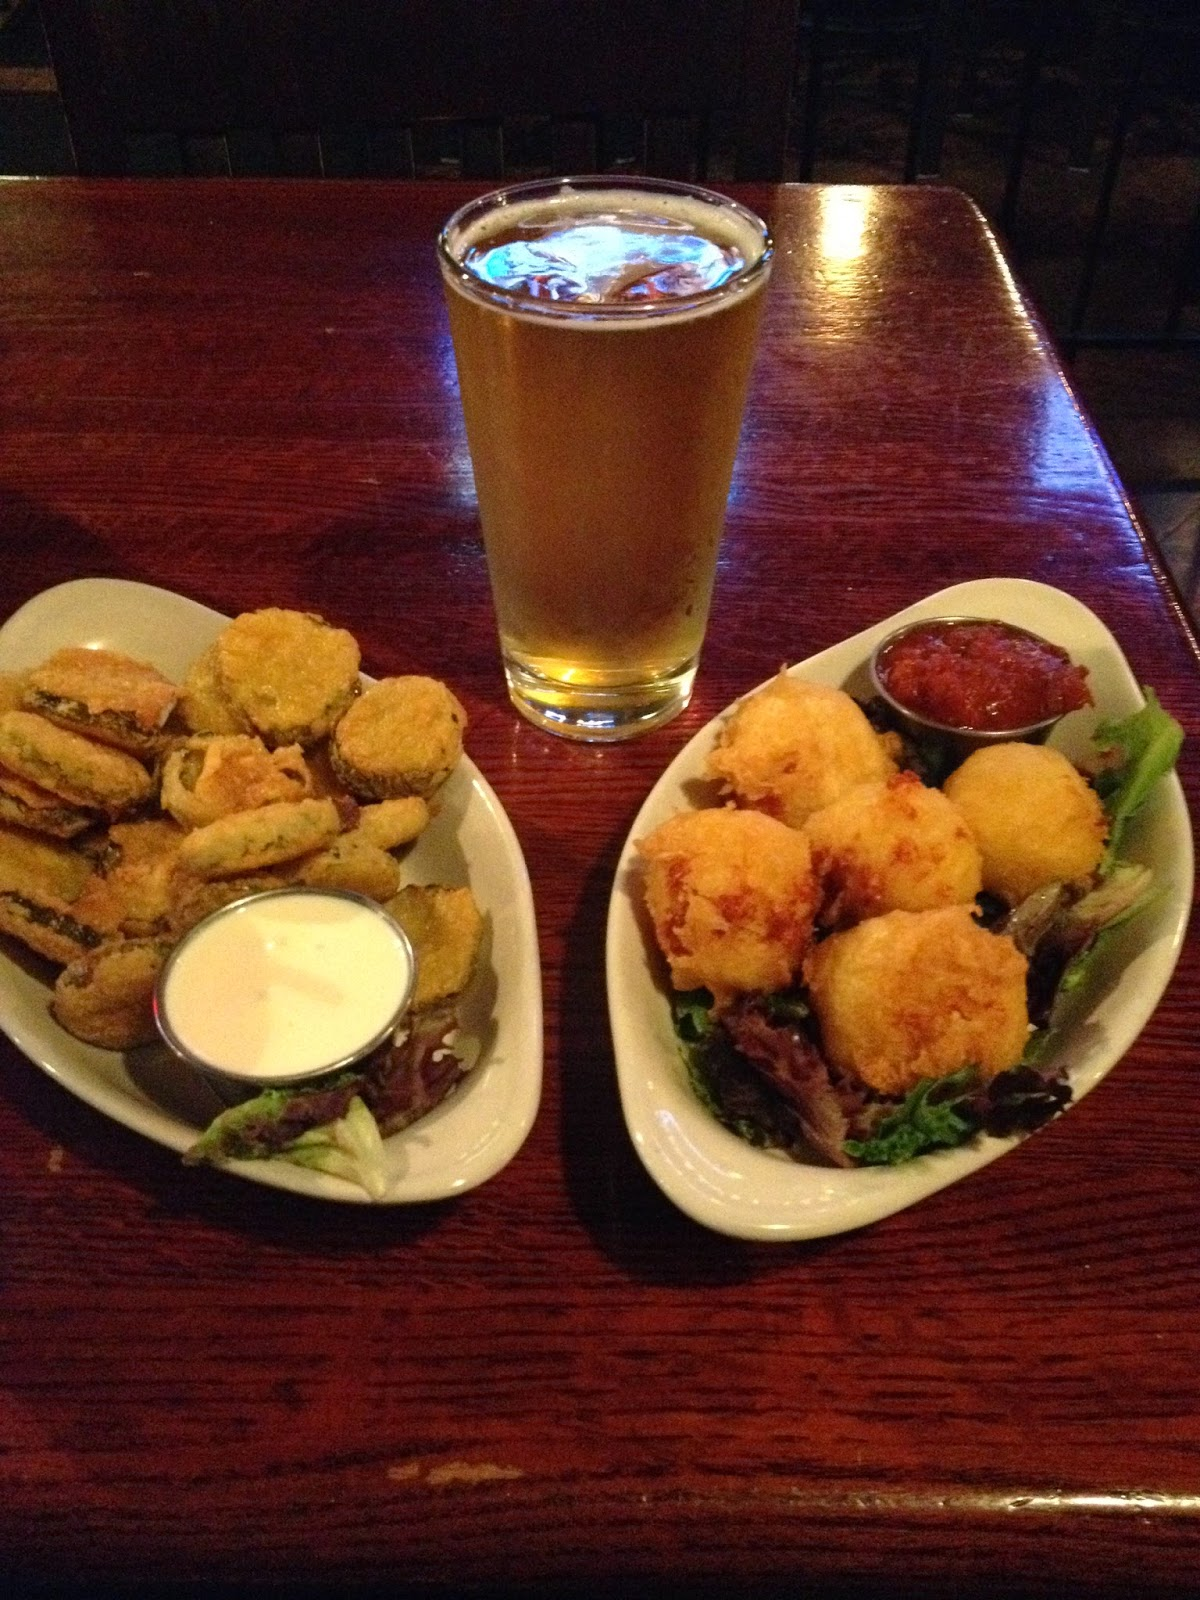 (L) Fried pickle chips with garlic-dijon aioli dipping sauce  (C) Strongbow English Dry Cider  (R) Deep fried Mac & Cheese bites with marinara